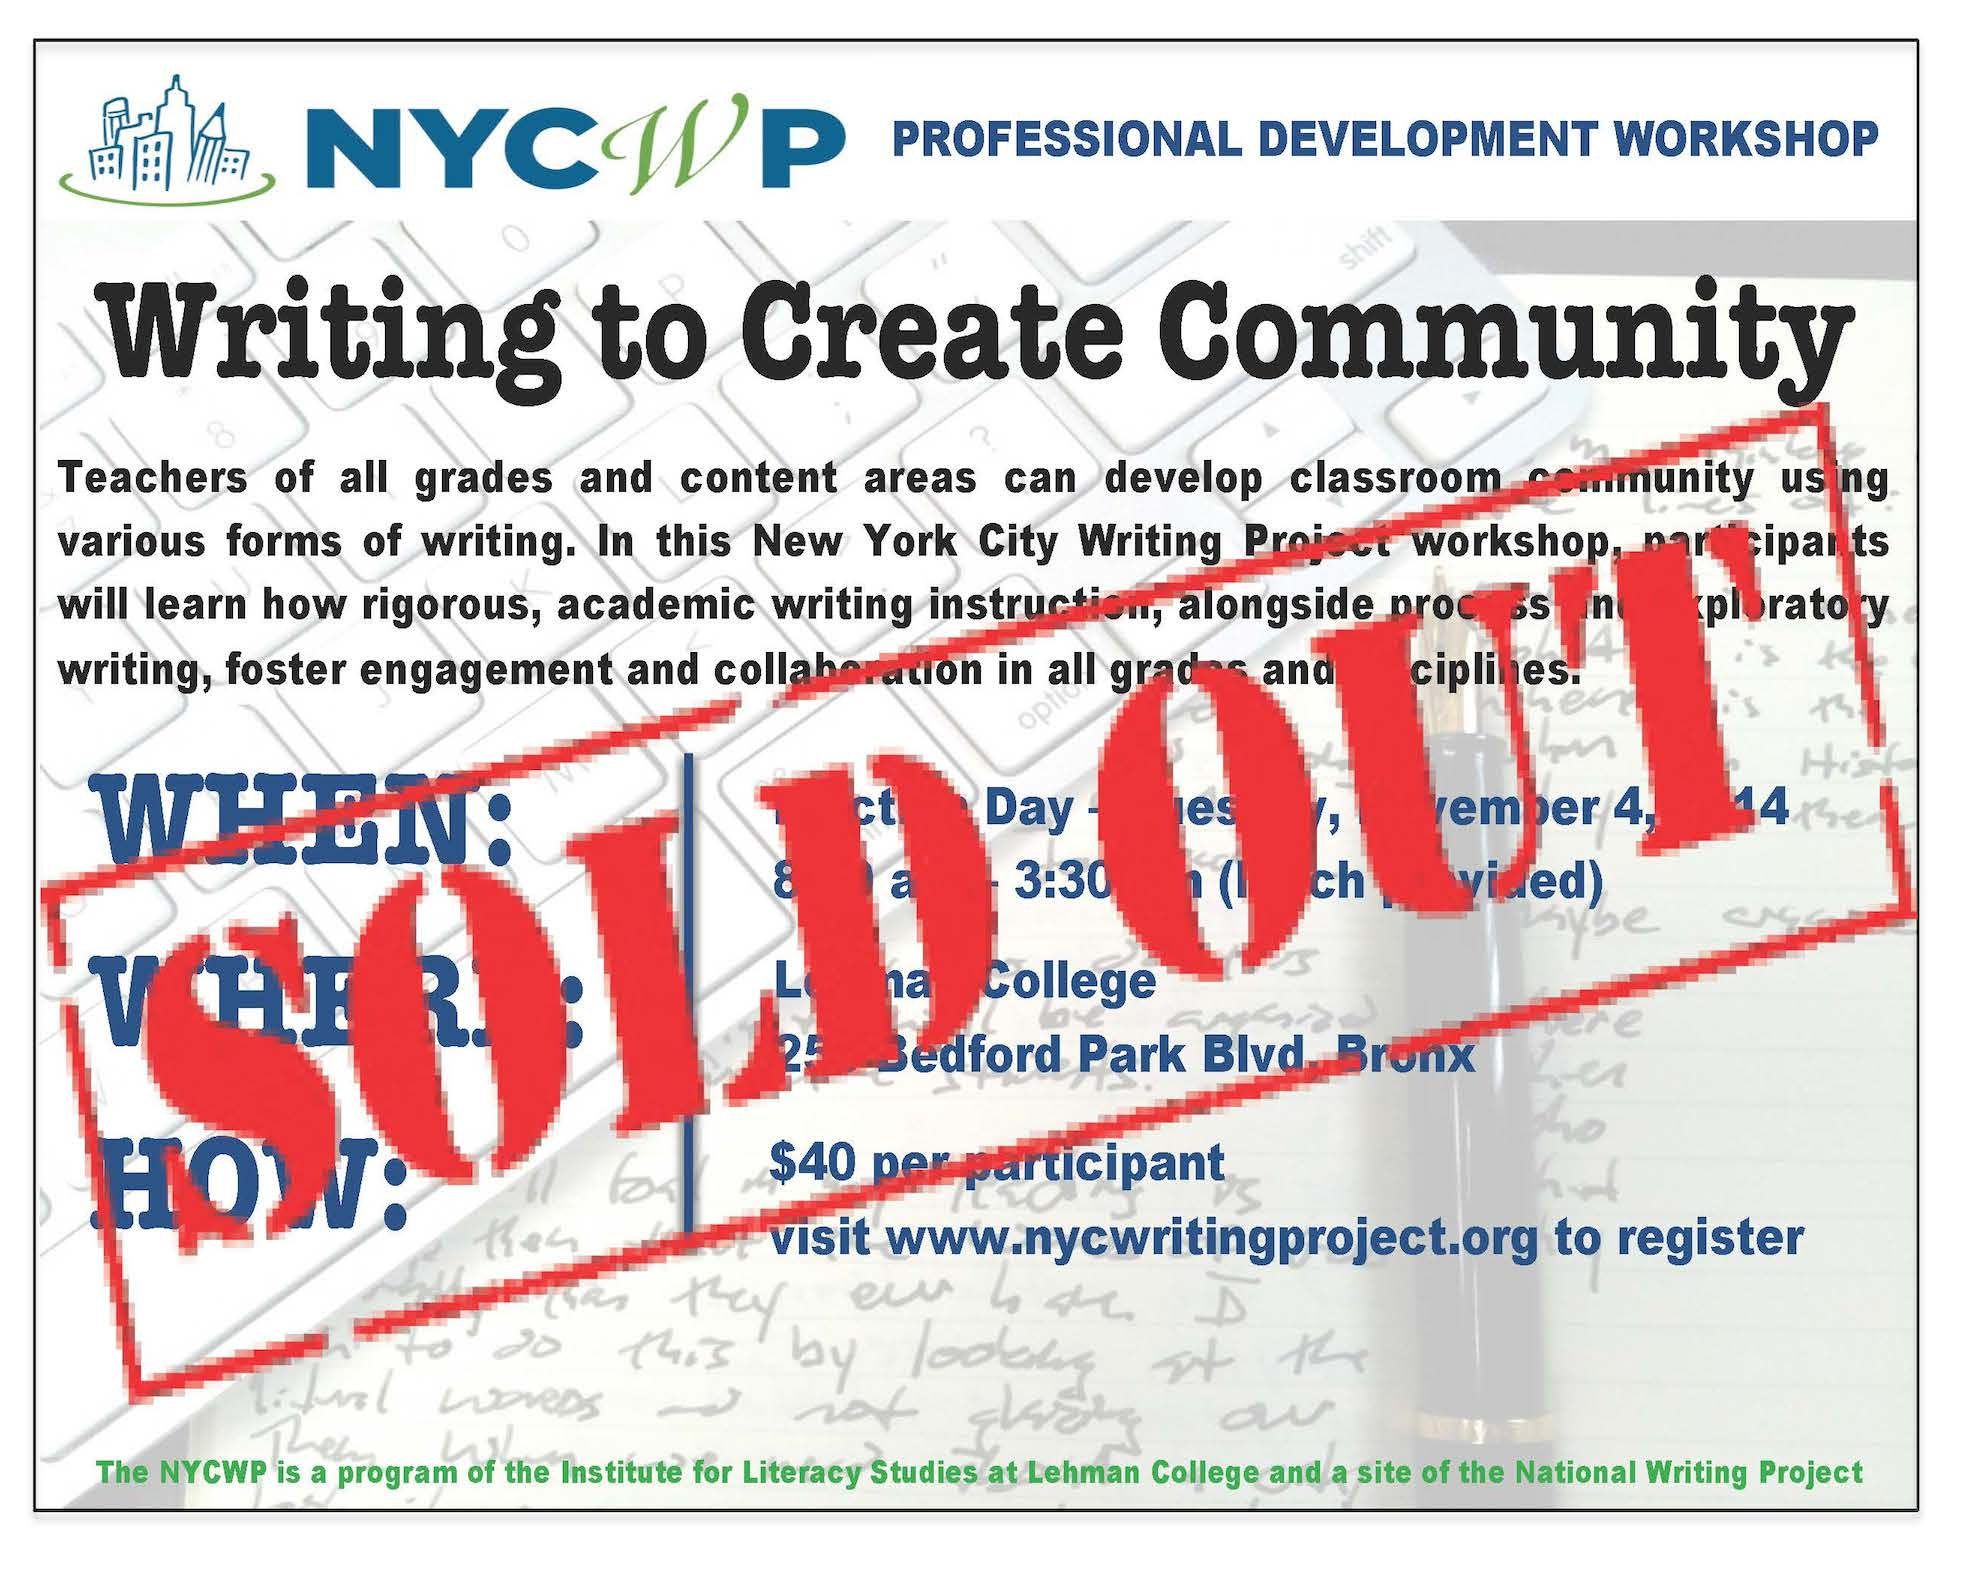 New York City Writing Project Election Day Pd Workshop